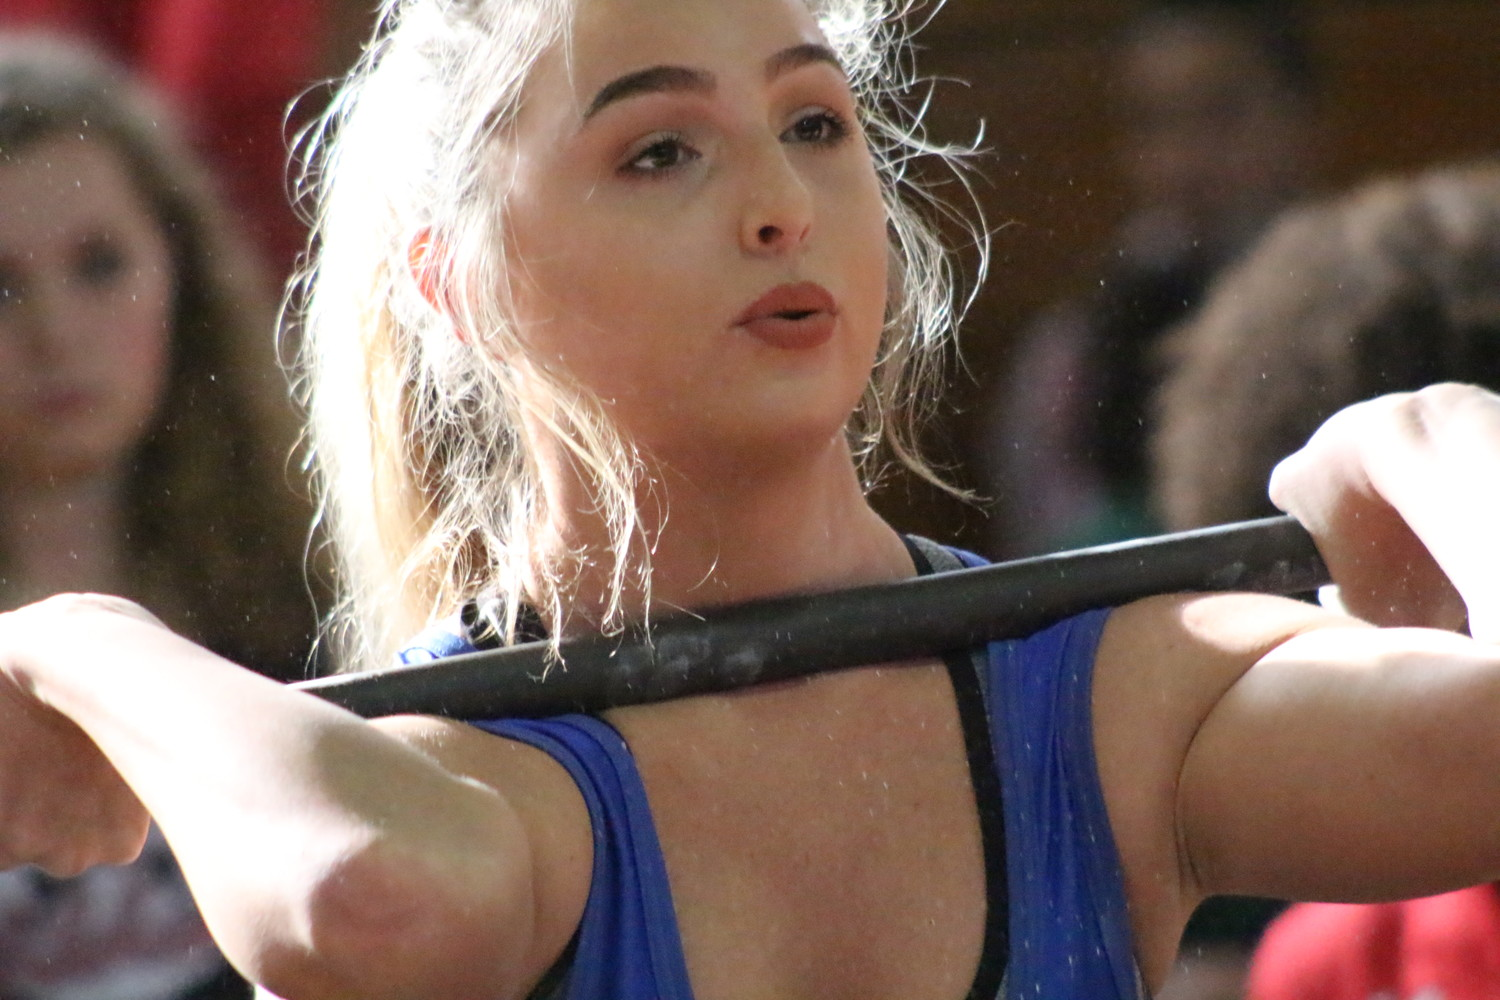 Clay High's Jade Berger was top lifter at 154 at district 7-1A championships held Saturday at Baker County. Berger had tough battle with Baker County's Emma Self, both tied at 295 pound totals with Berger less misses.